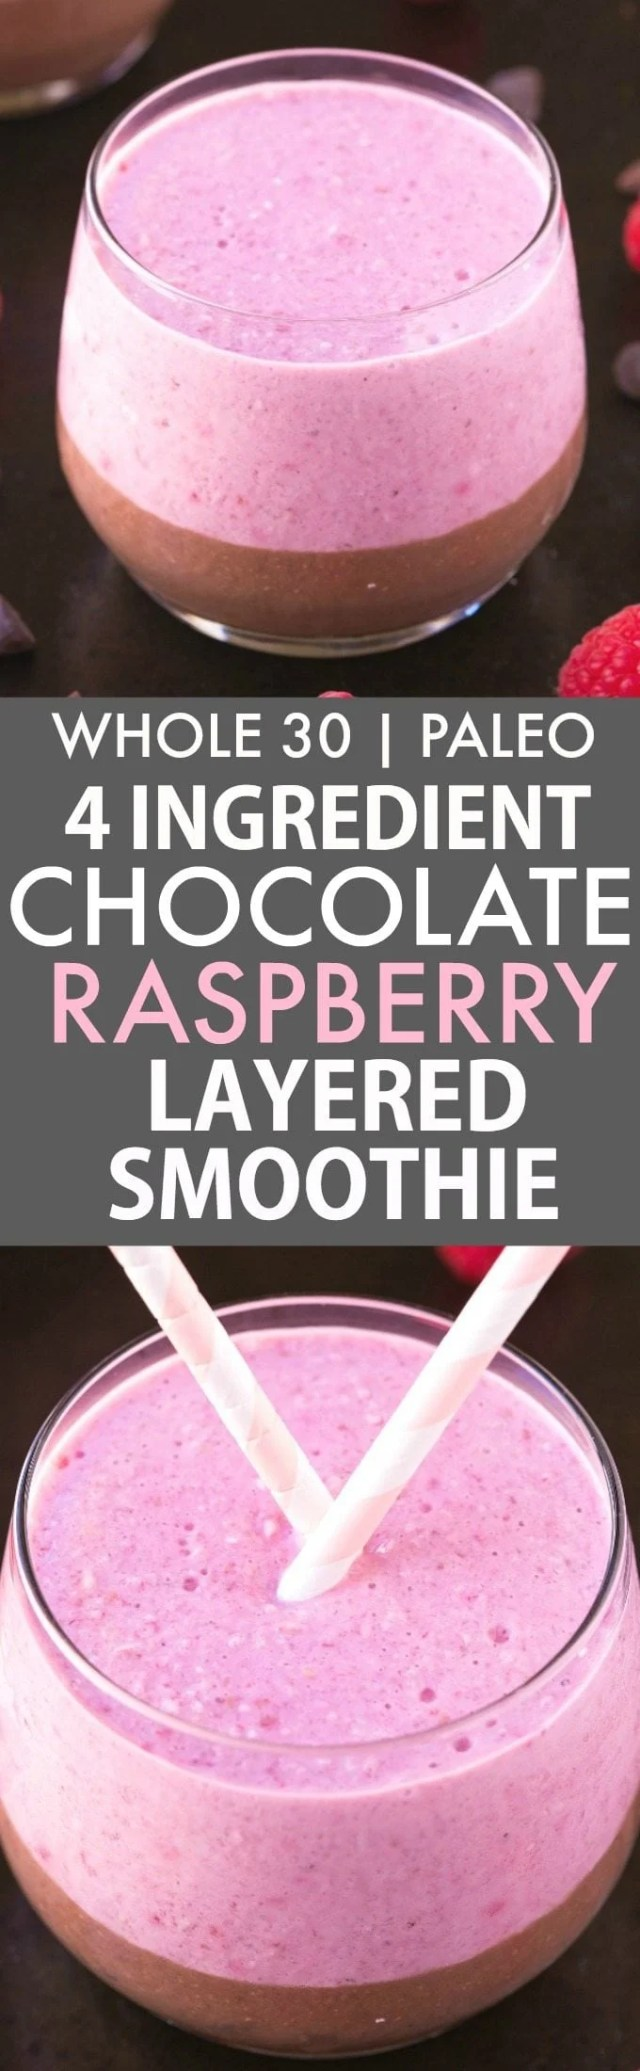 4 Ingredient Chocolate Raspberry Layered Breakfast Smoothie (Whole30, Paleo, V, GF)- Thick, creamy, protein and fiber packed breakfast smoothie LOADED with nutrients to keep you satisfied for hours! Filling, easy and sugar free! {whole 30, paleo, vegan, gluten free recipe}- thebigmansworld.com